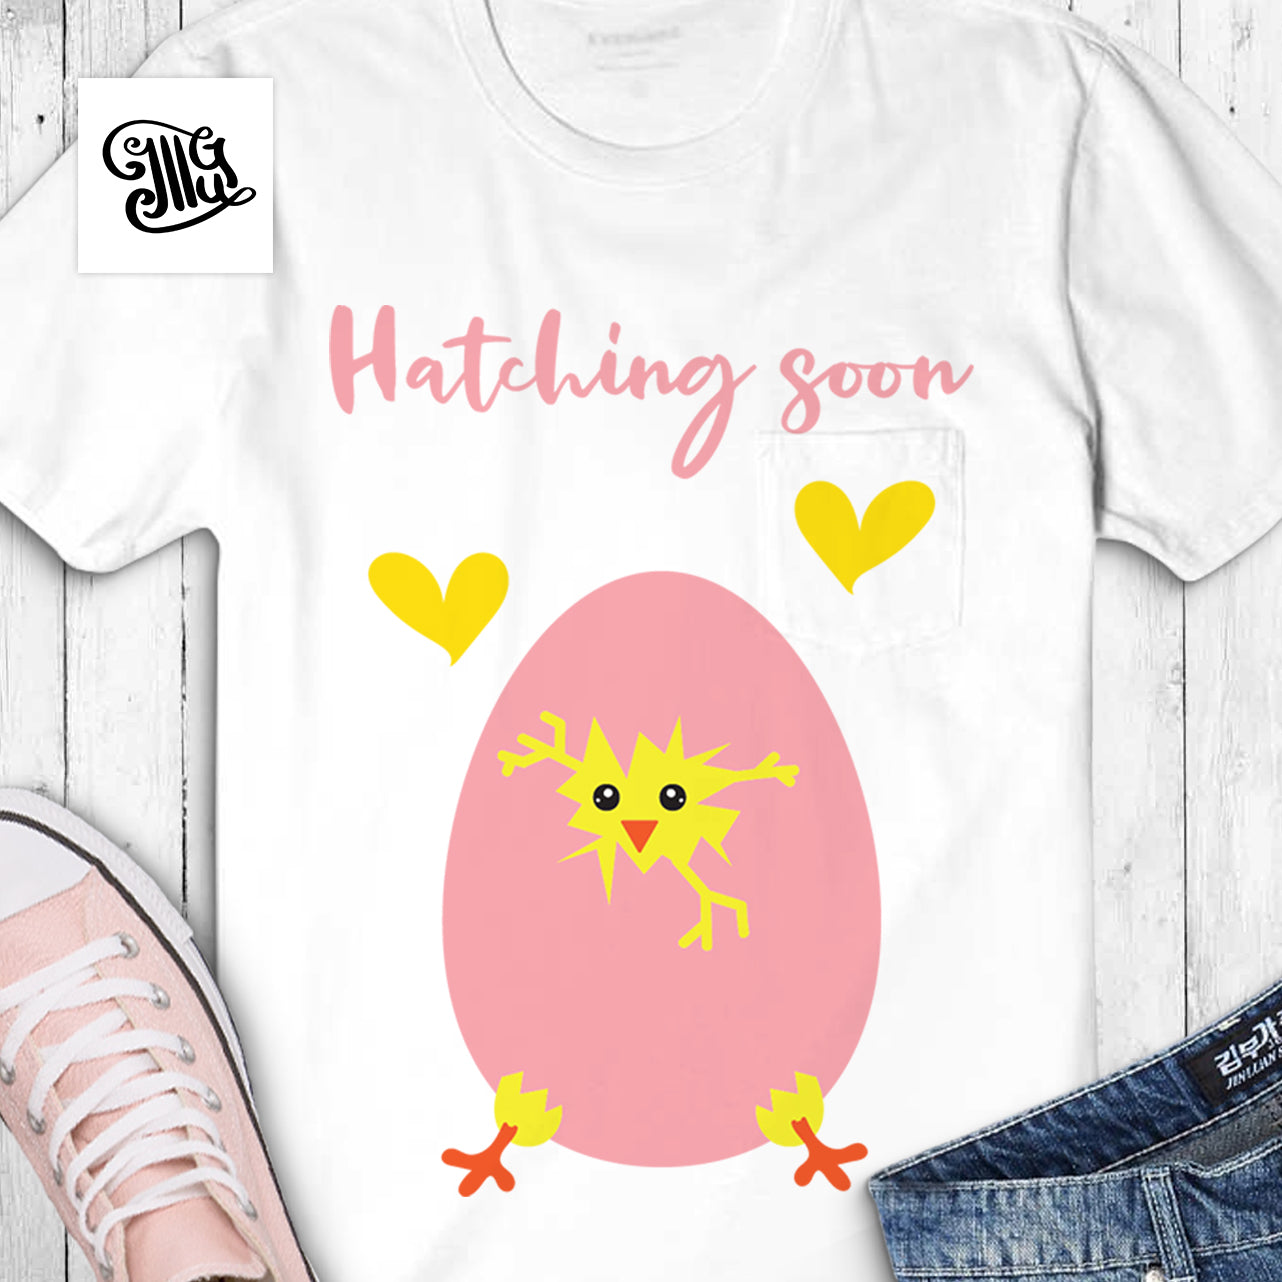 89bda984 Hatching soon svg, pregnancy svg, chick hatching egg svg, baby girl  announcement svg ...